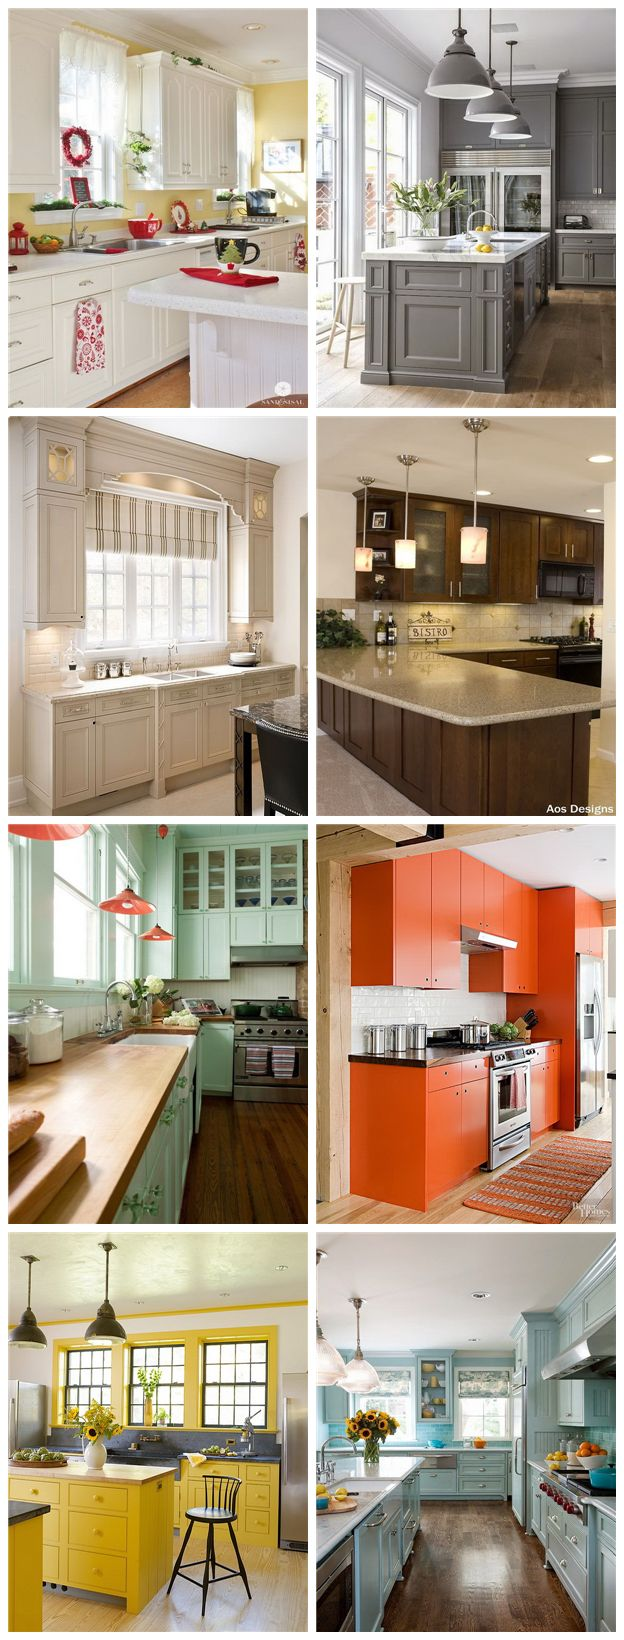 Charmant Most Popular Kitchen Cabinet Paint Color Ideas.